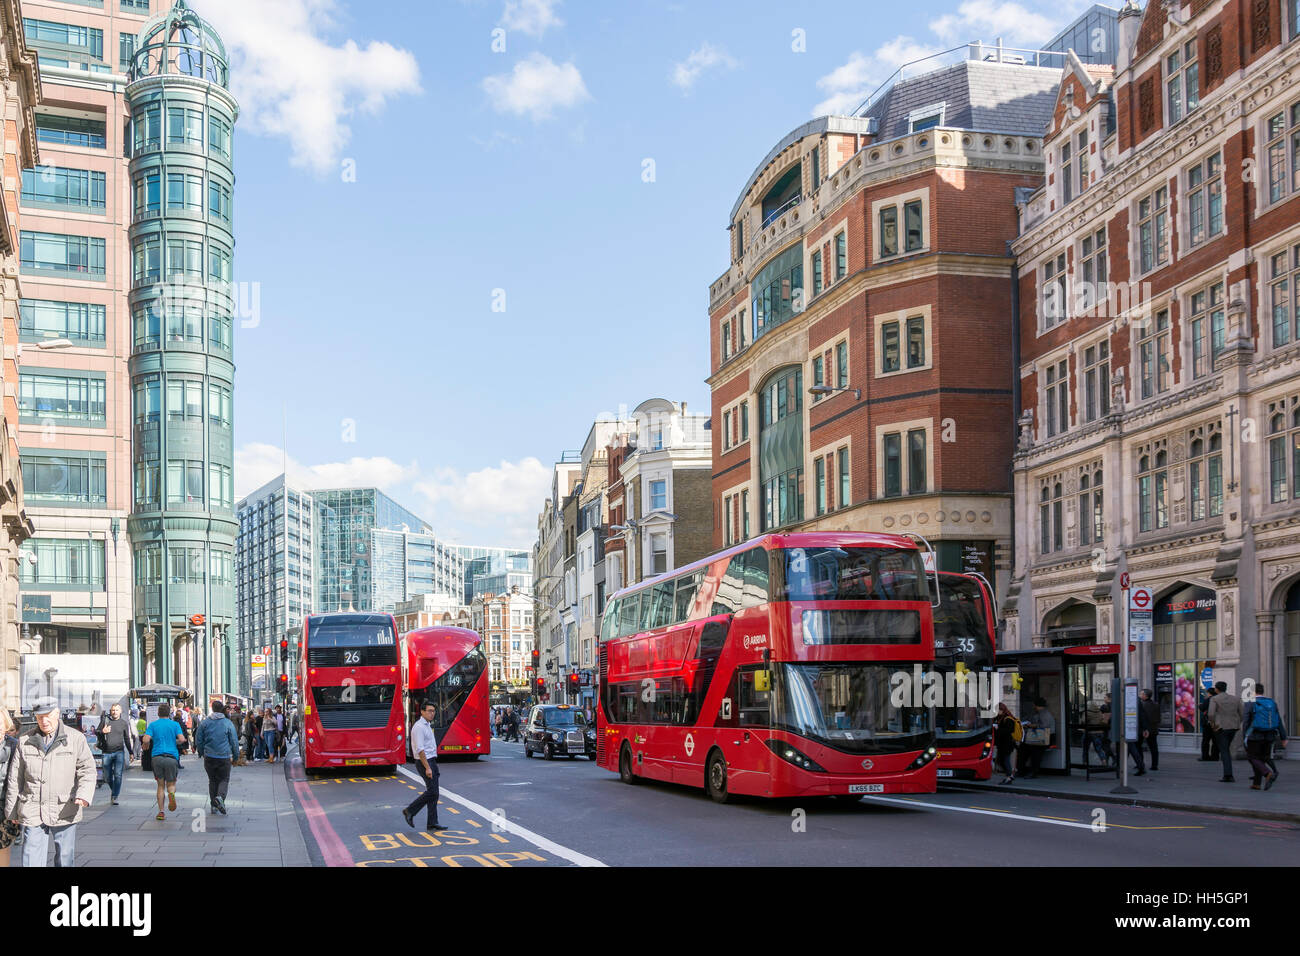 Double-decker buses in Bishopsgate, City of London, Greater London, England, United Kingdom - Stock Image